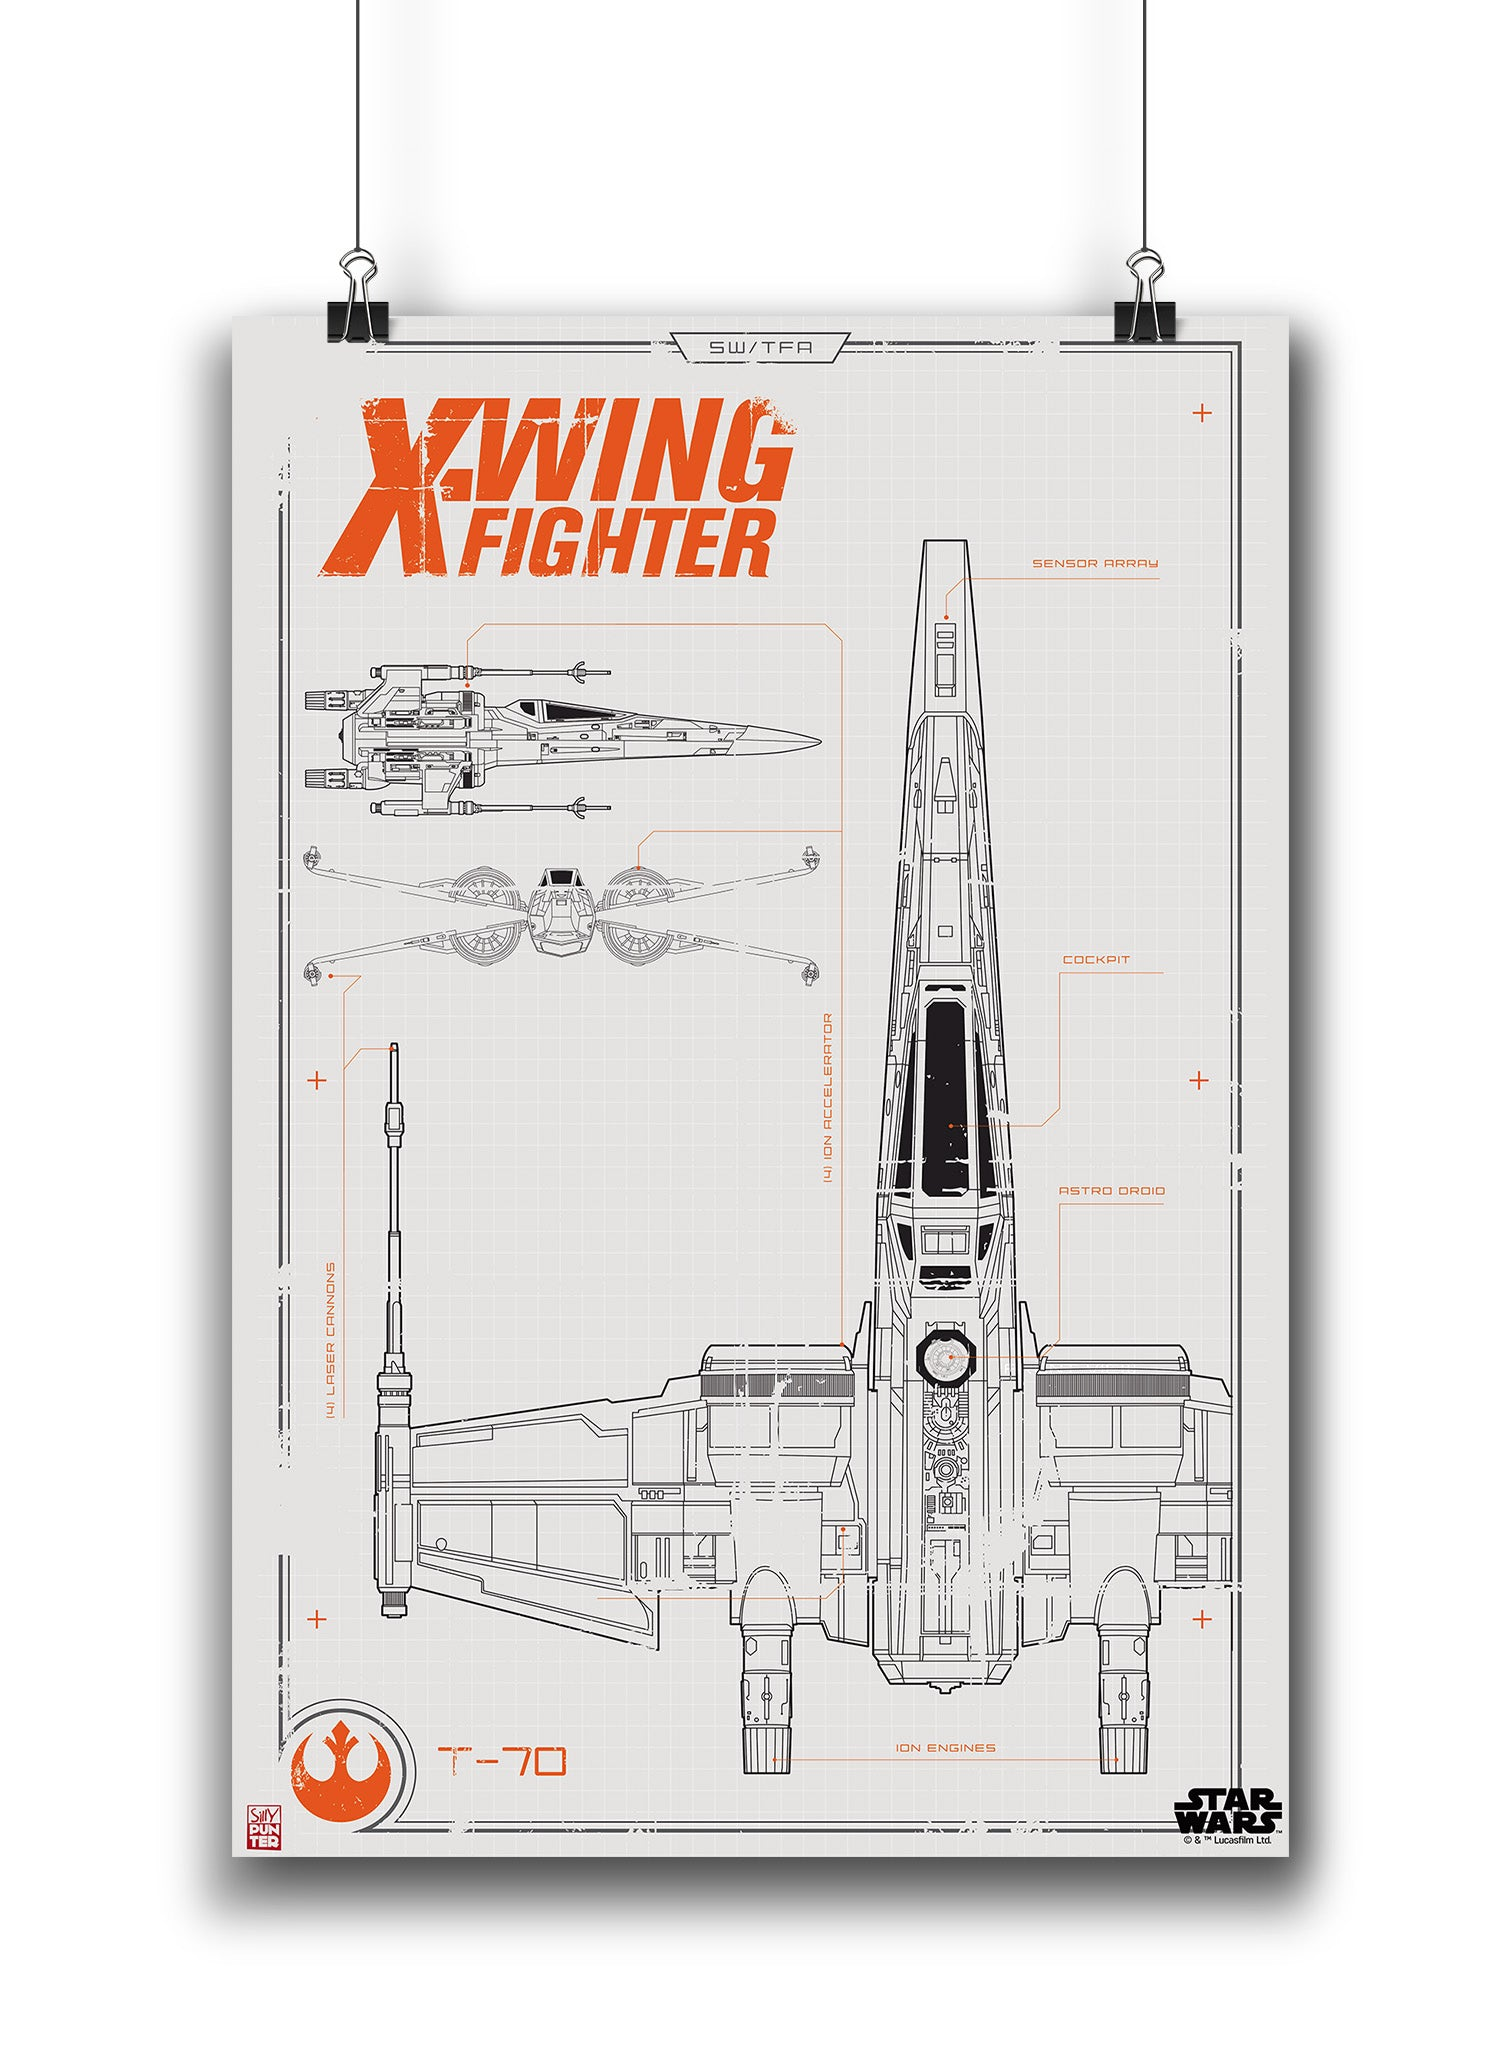 Star wars x wing fighter blueprint poster in india silly punter star wars x wing fighter blueprint poster malvernweather Images